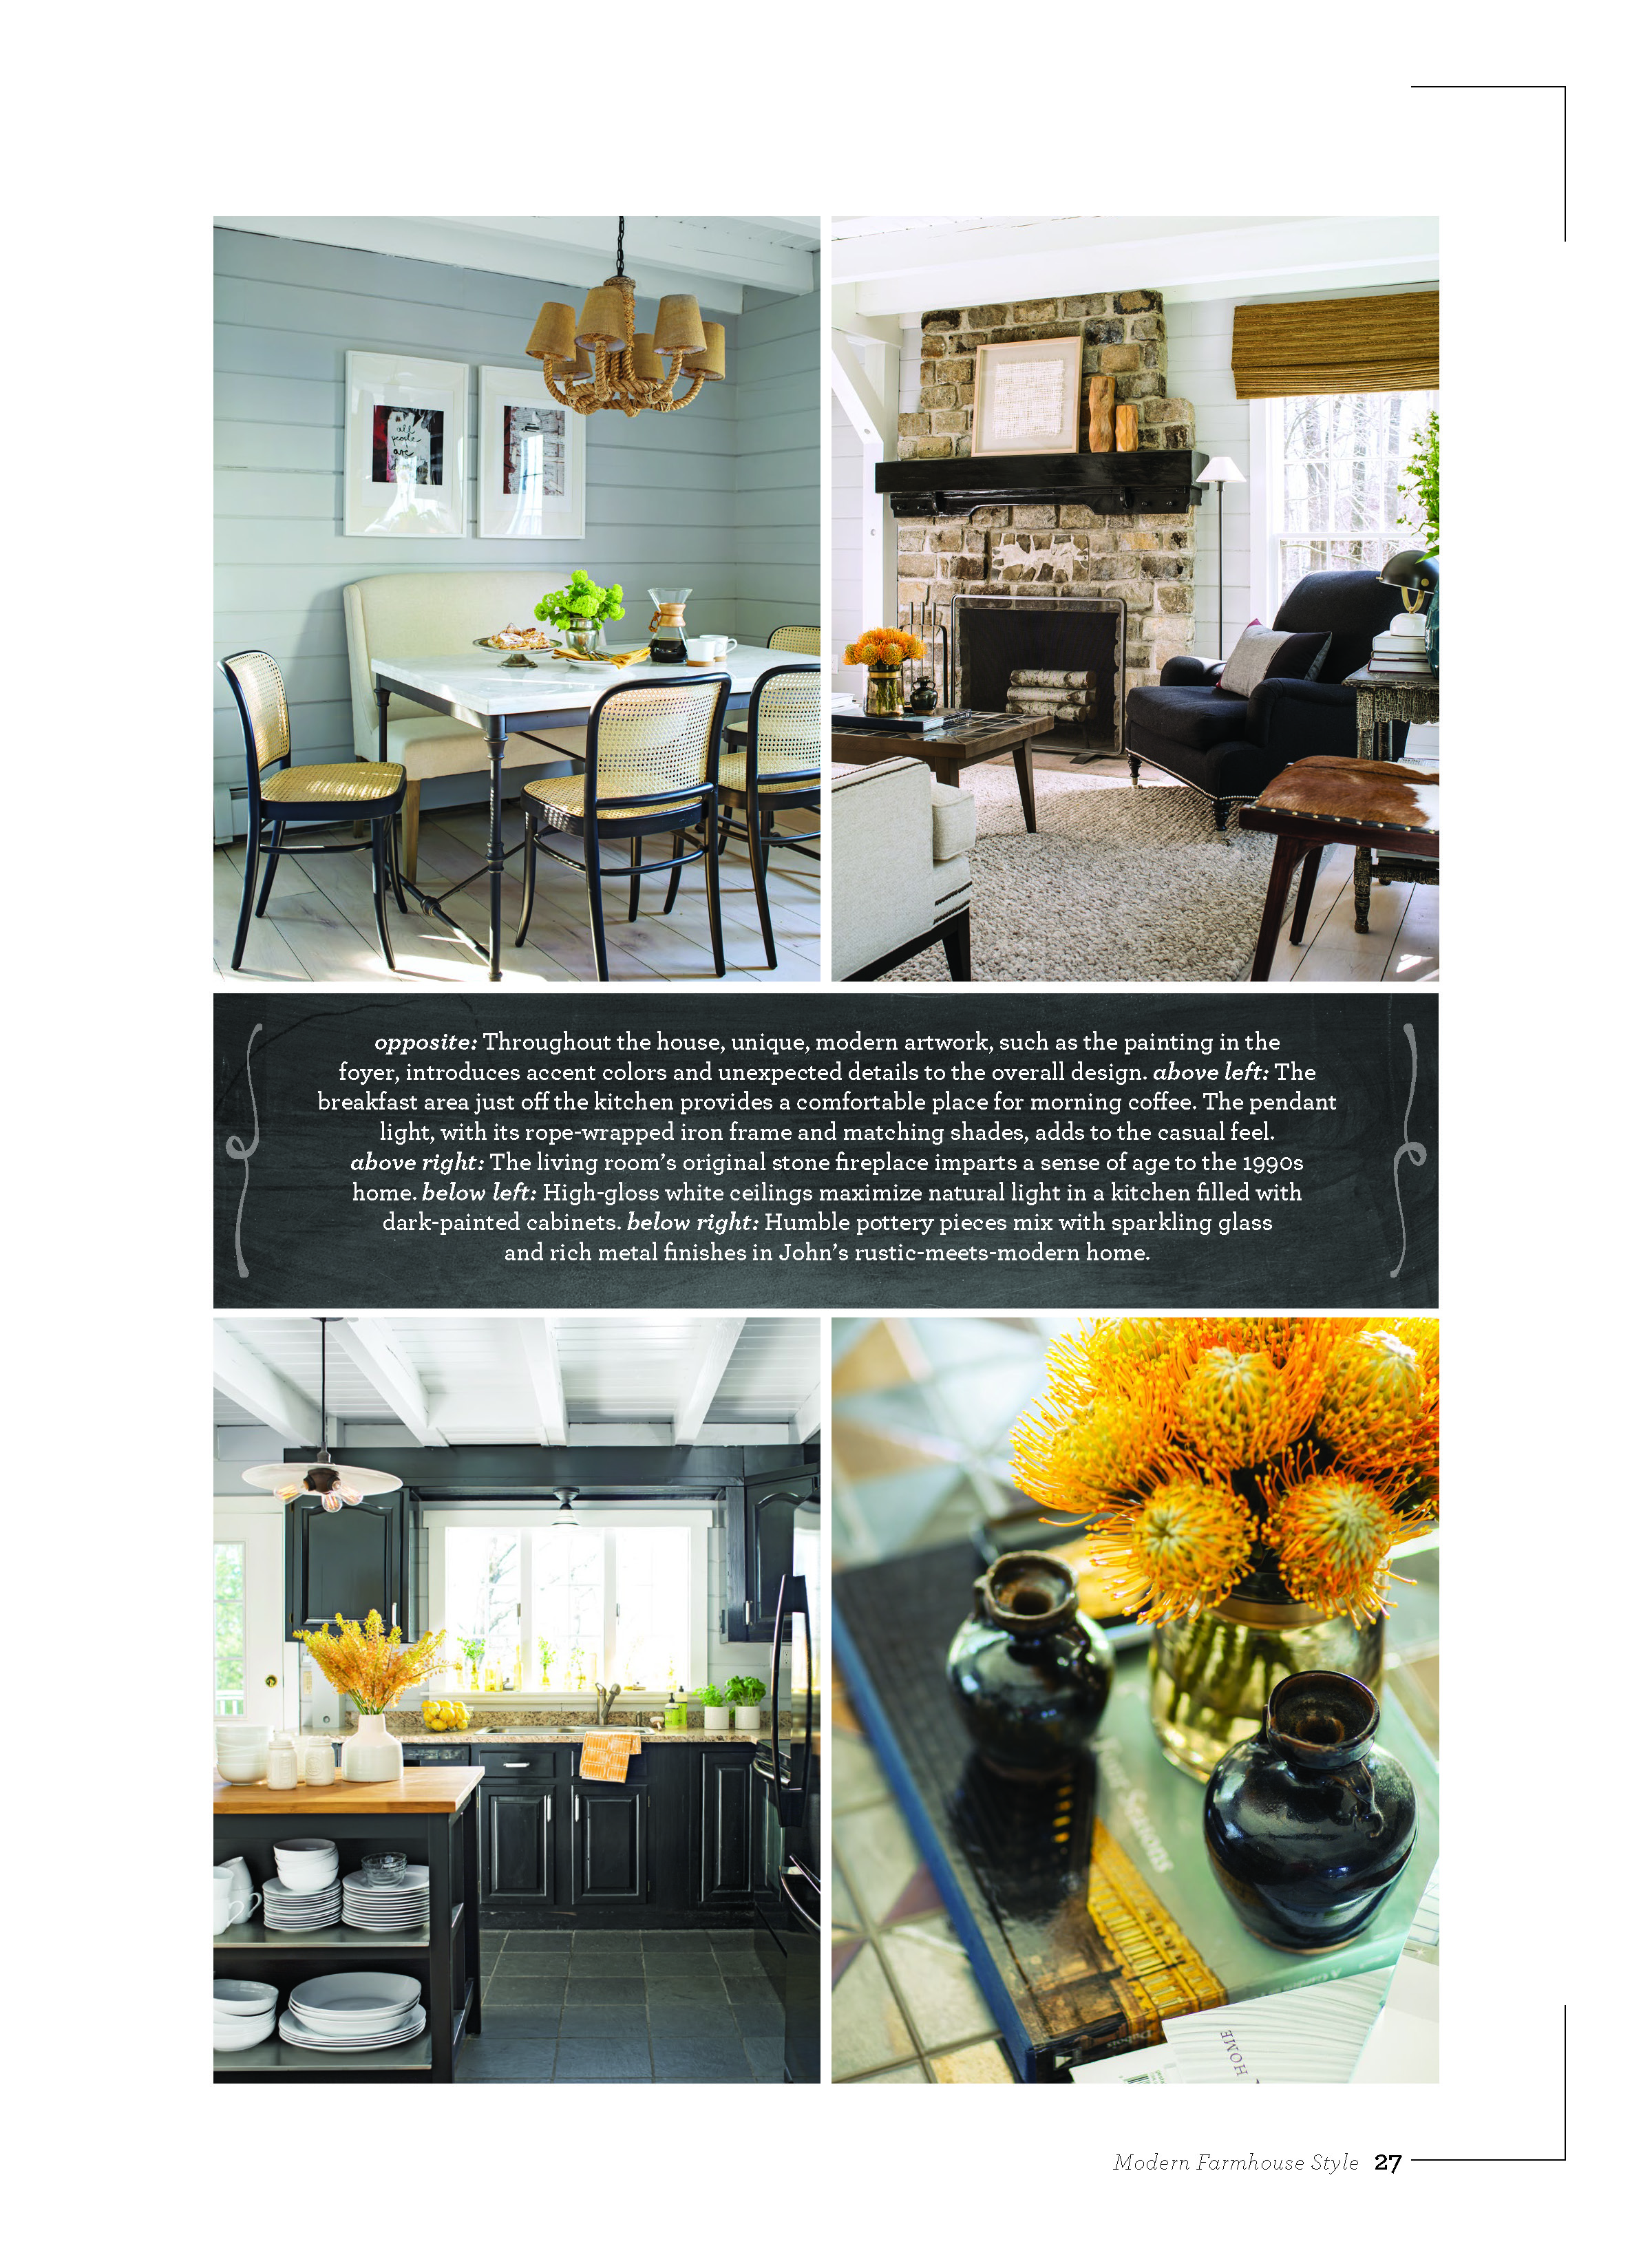 Modern Farmhouse Style - Summer 2018 - Pages 20-29_Page_08.jpg